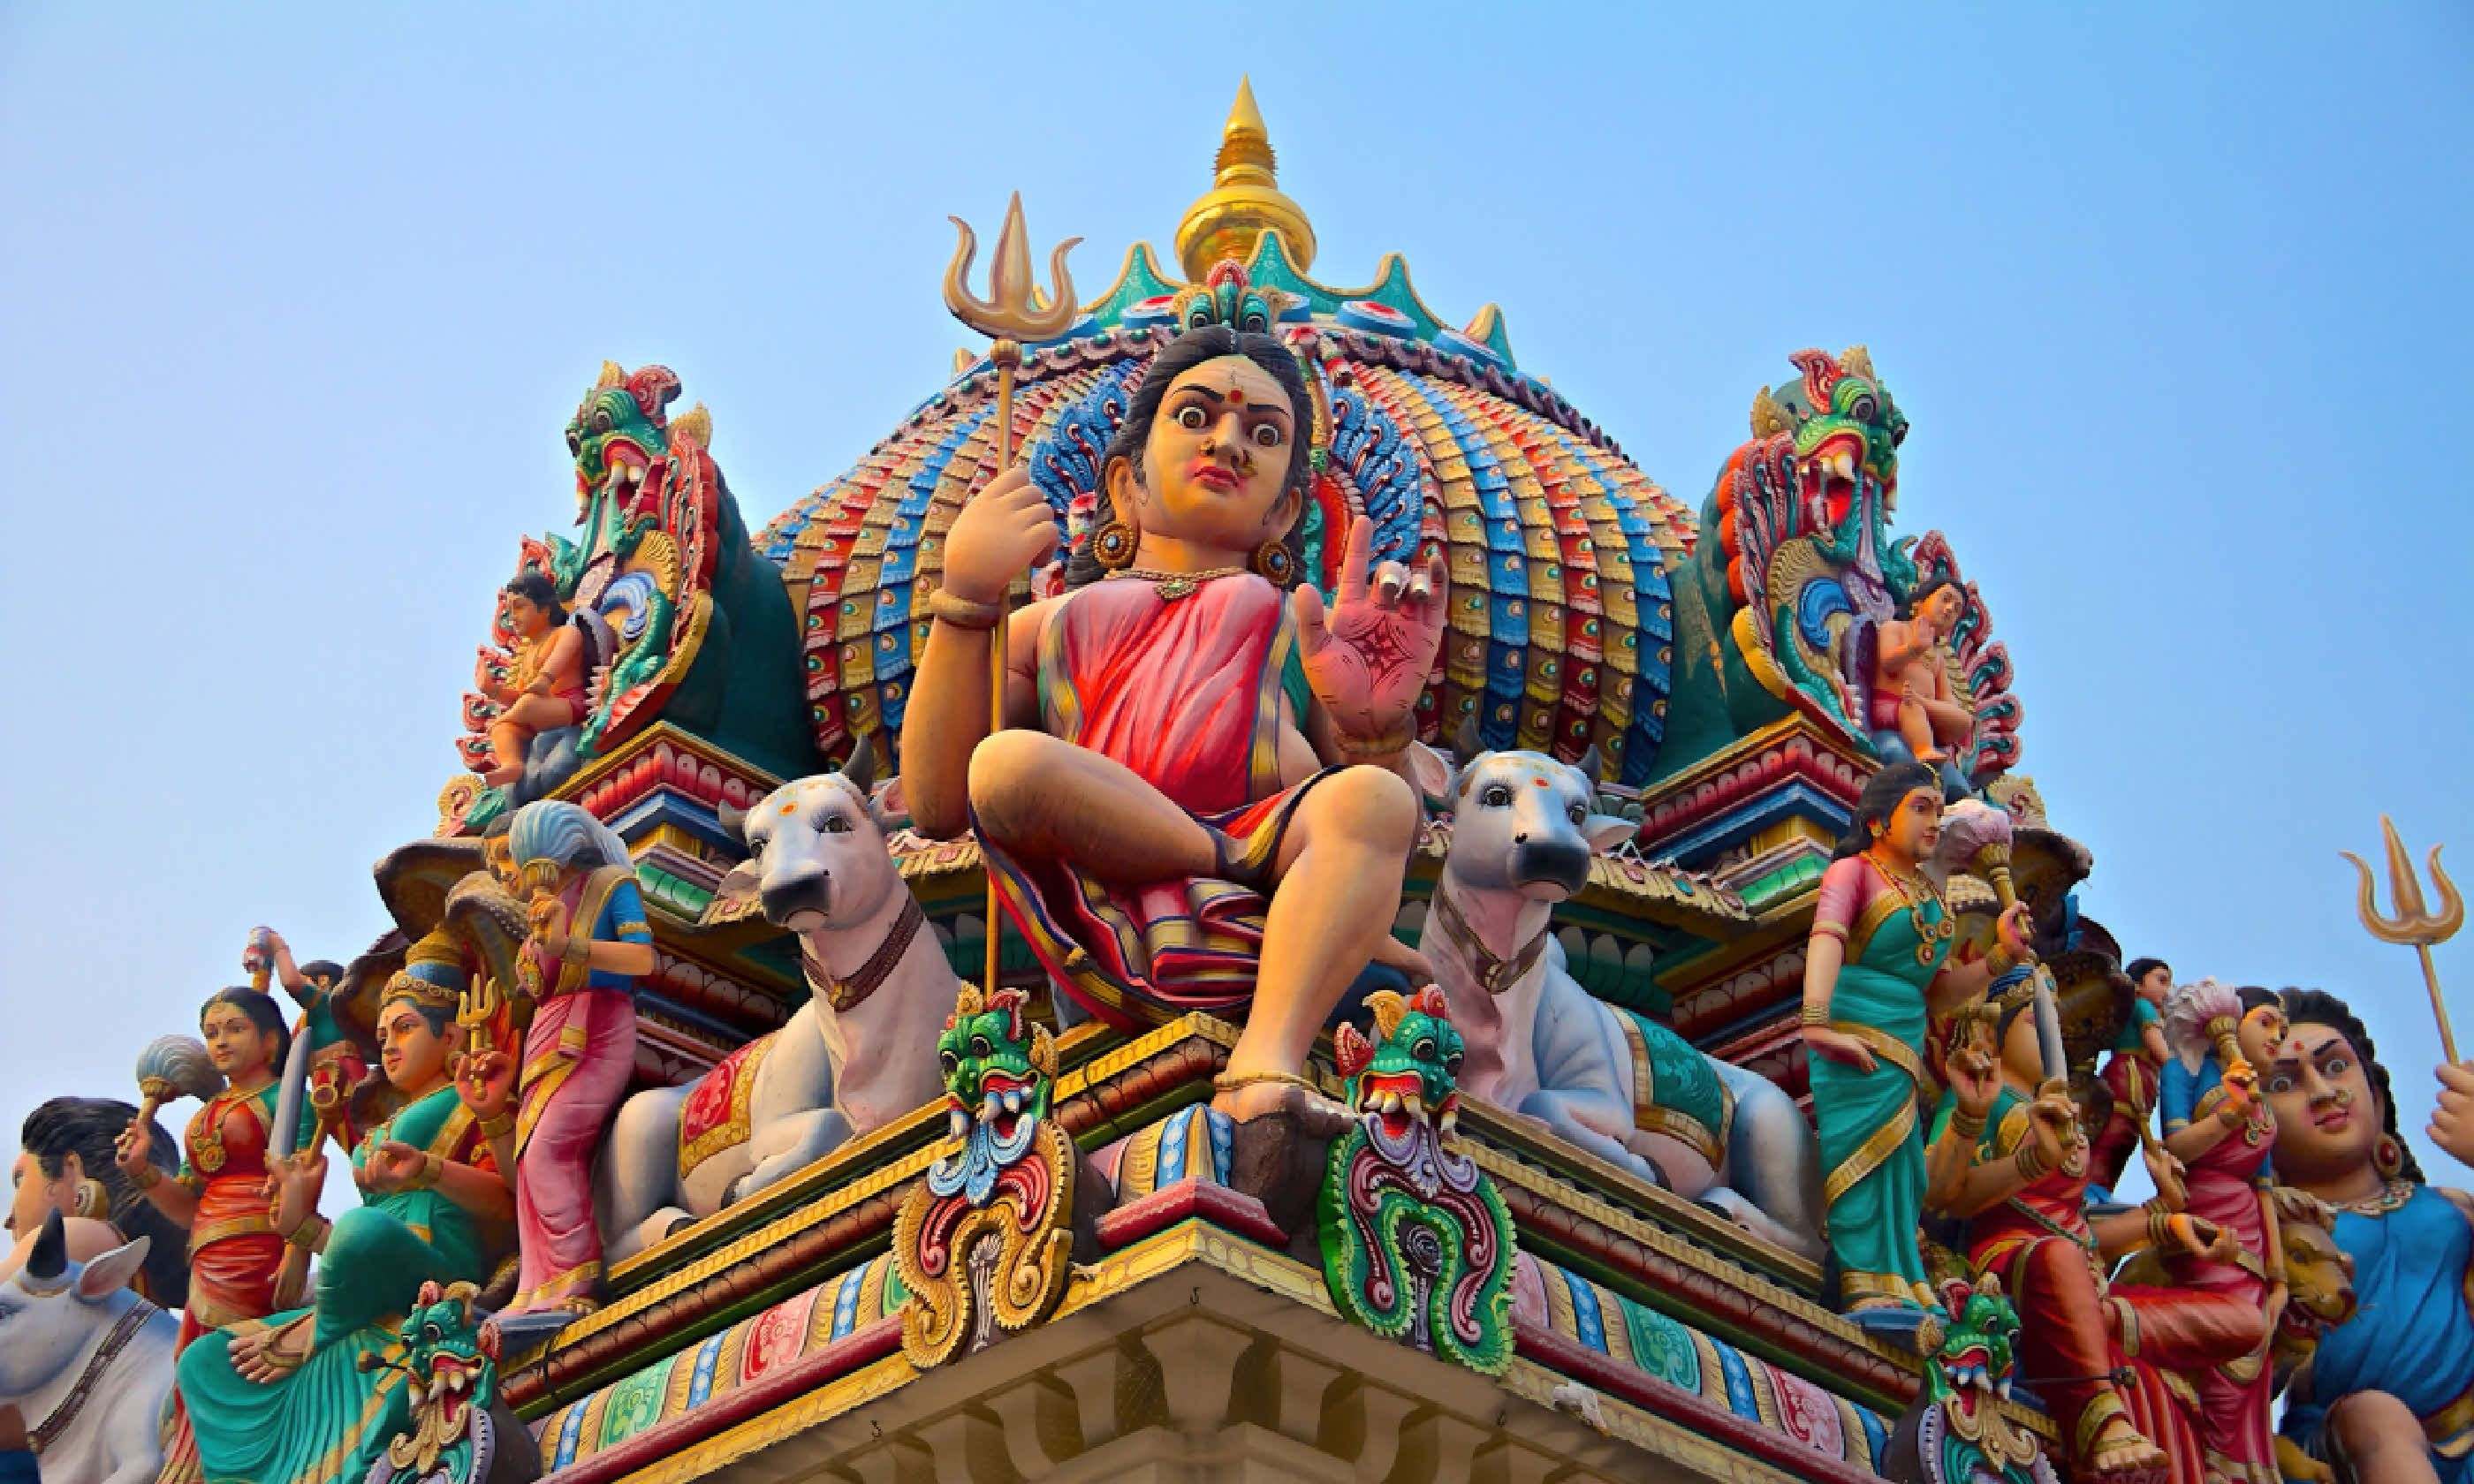 Sri Mariamman hindu temple in Singapore (Shutterstock)